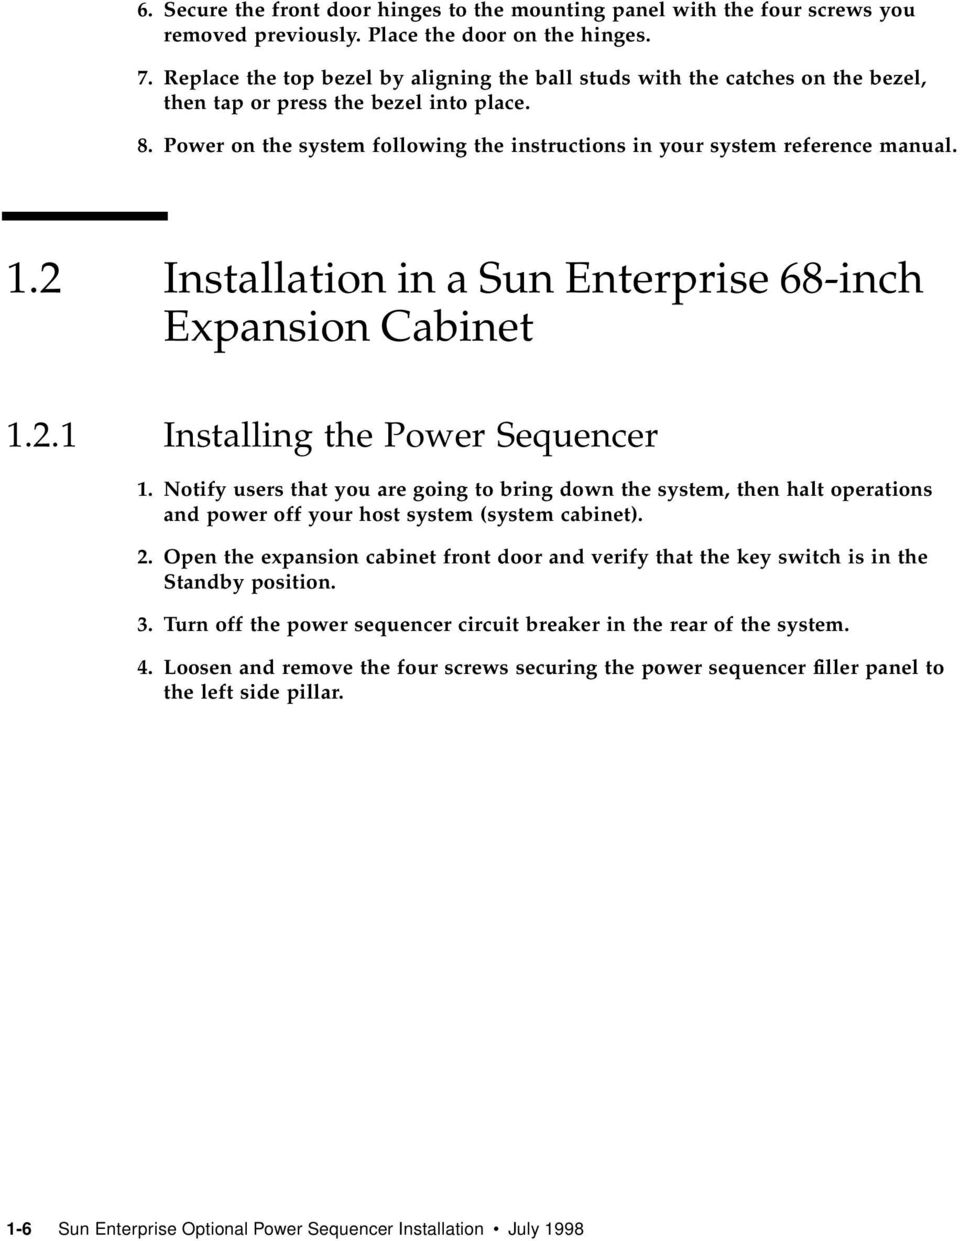 Power on the system following the instructions in your system reference manual. 1.2 Installation in a Sun Enterprise 68-inch Expansion Cabinet 1.2.1 Installing the Power Sequencer 1.